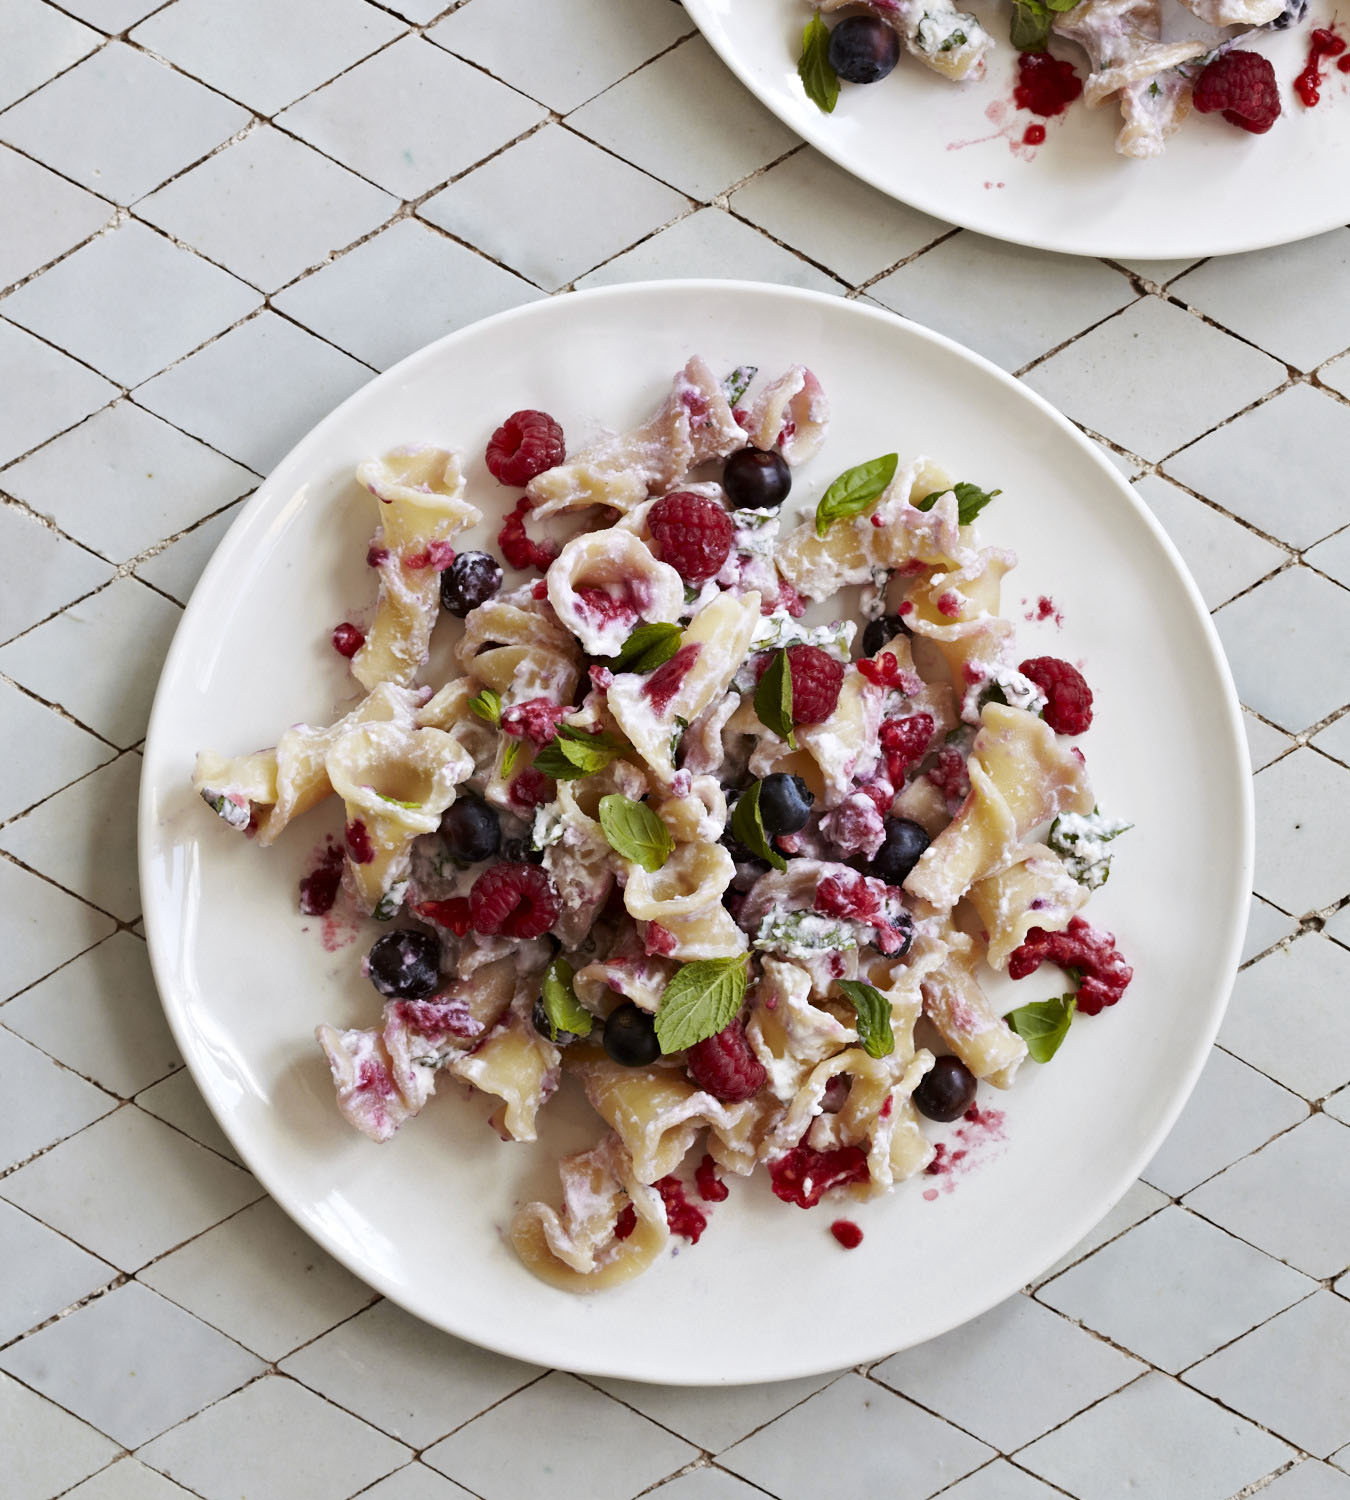 Pasta with ricotta & berries